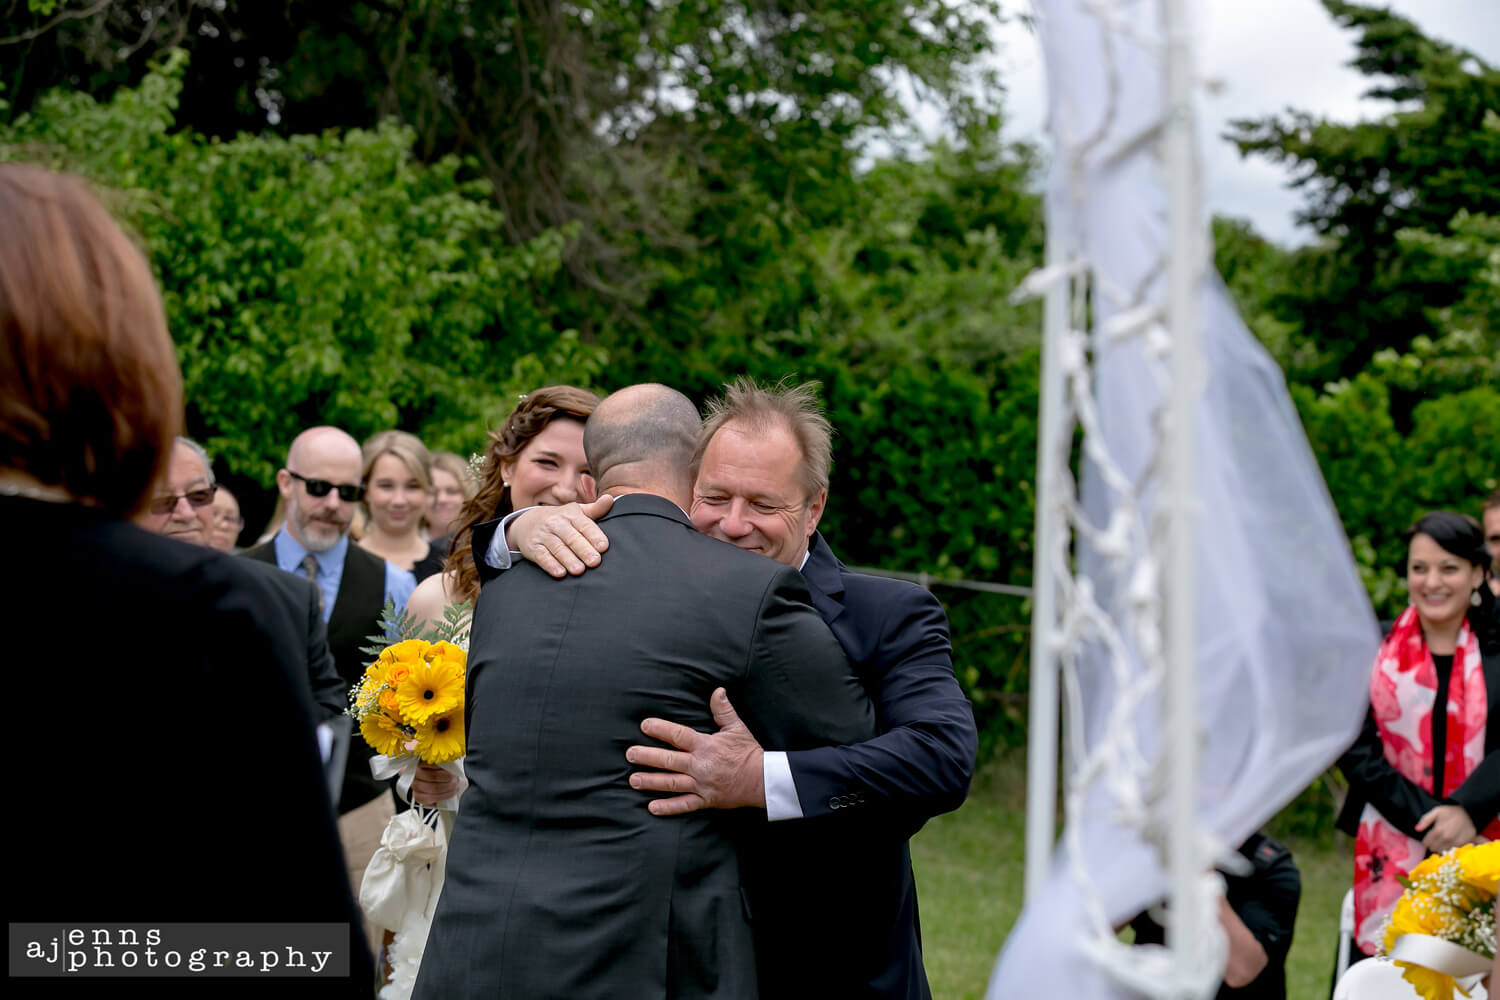 Father of the bride hugging the groom as he gives away his daughter